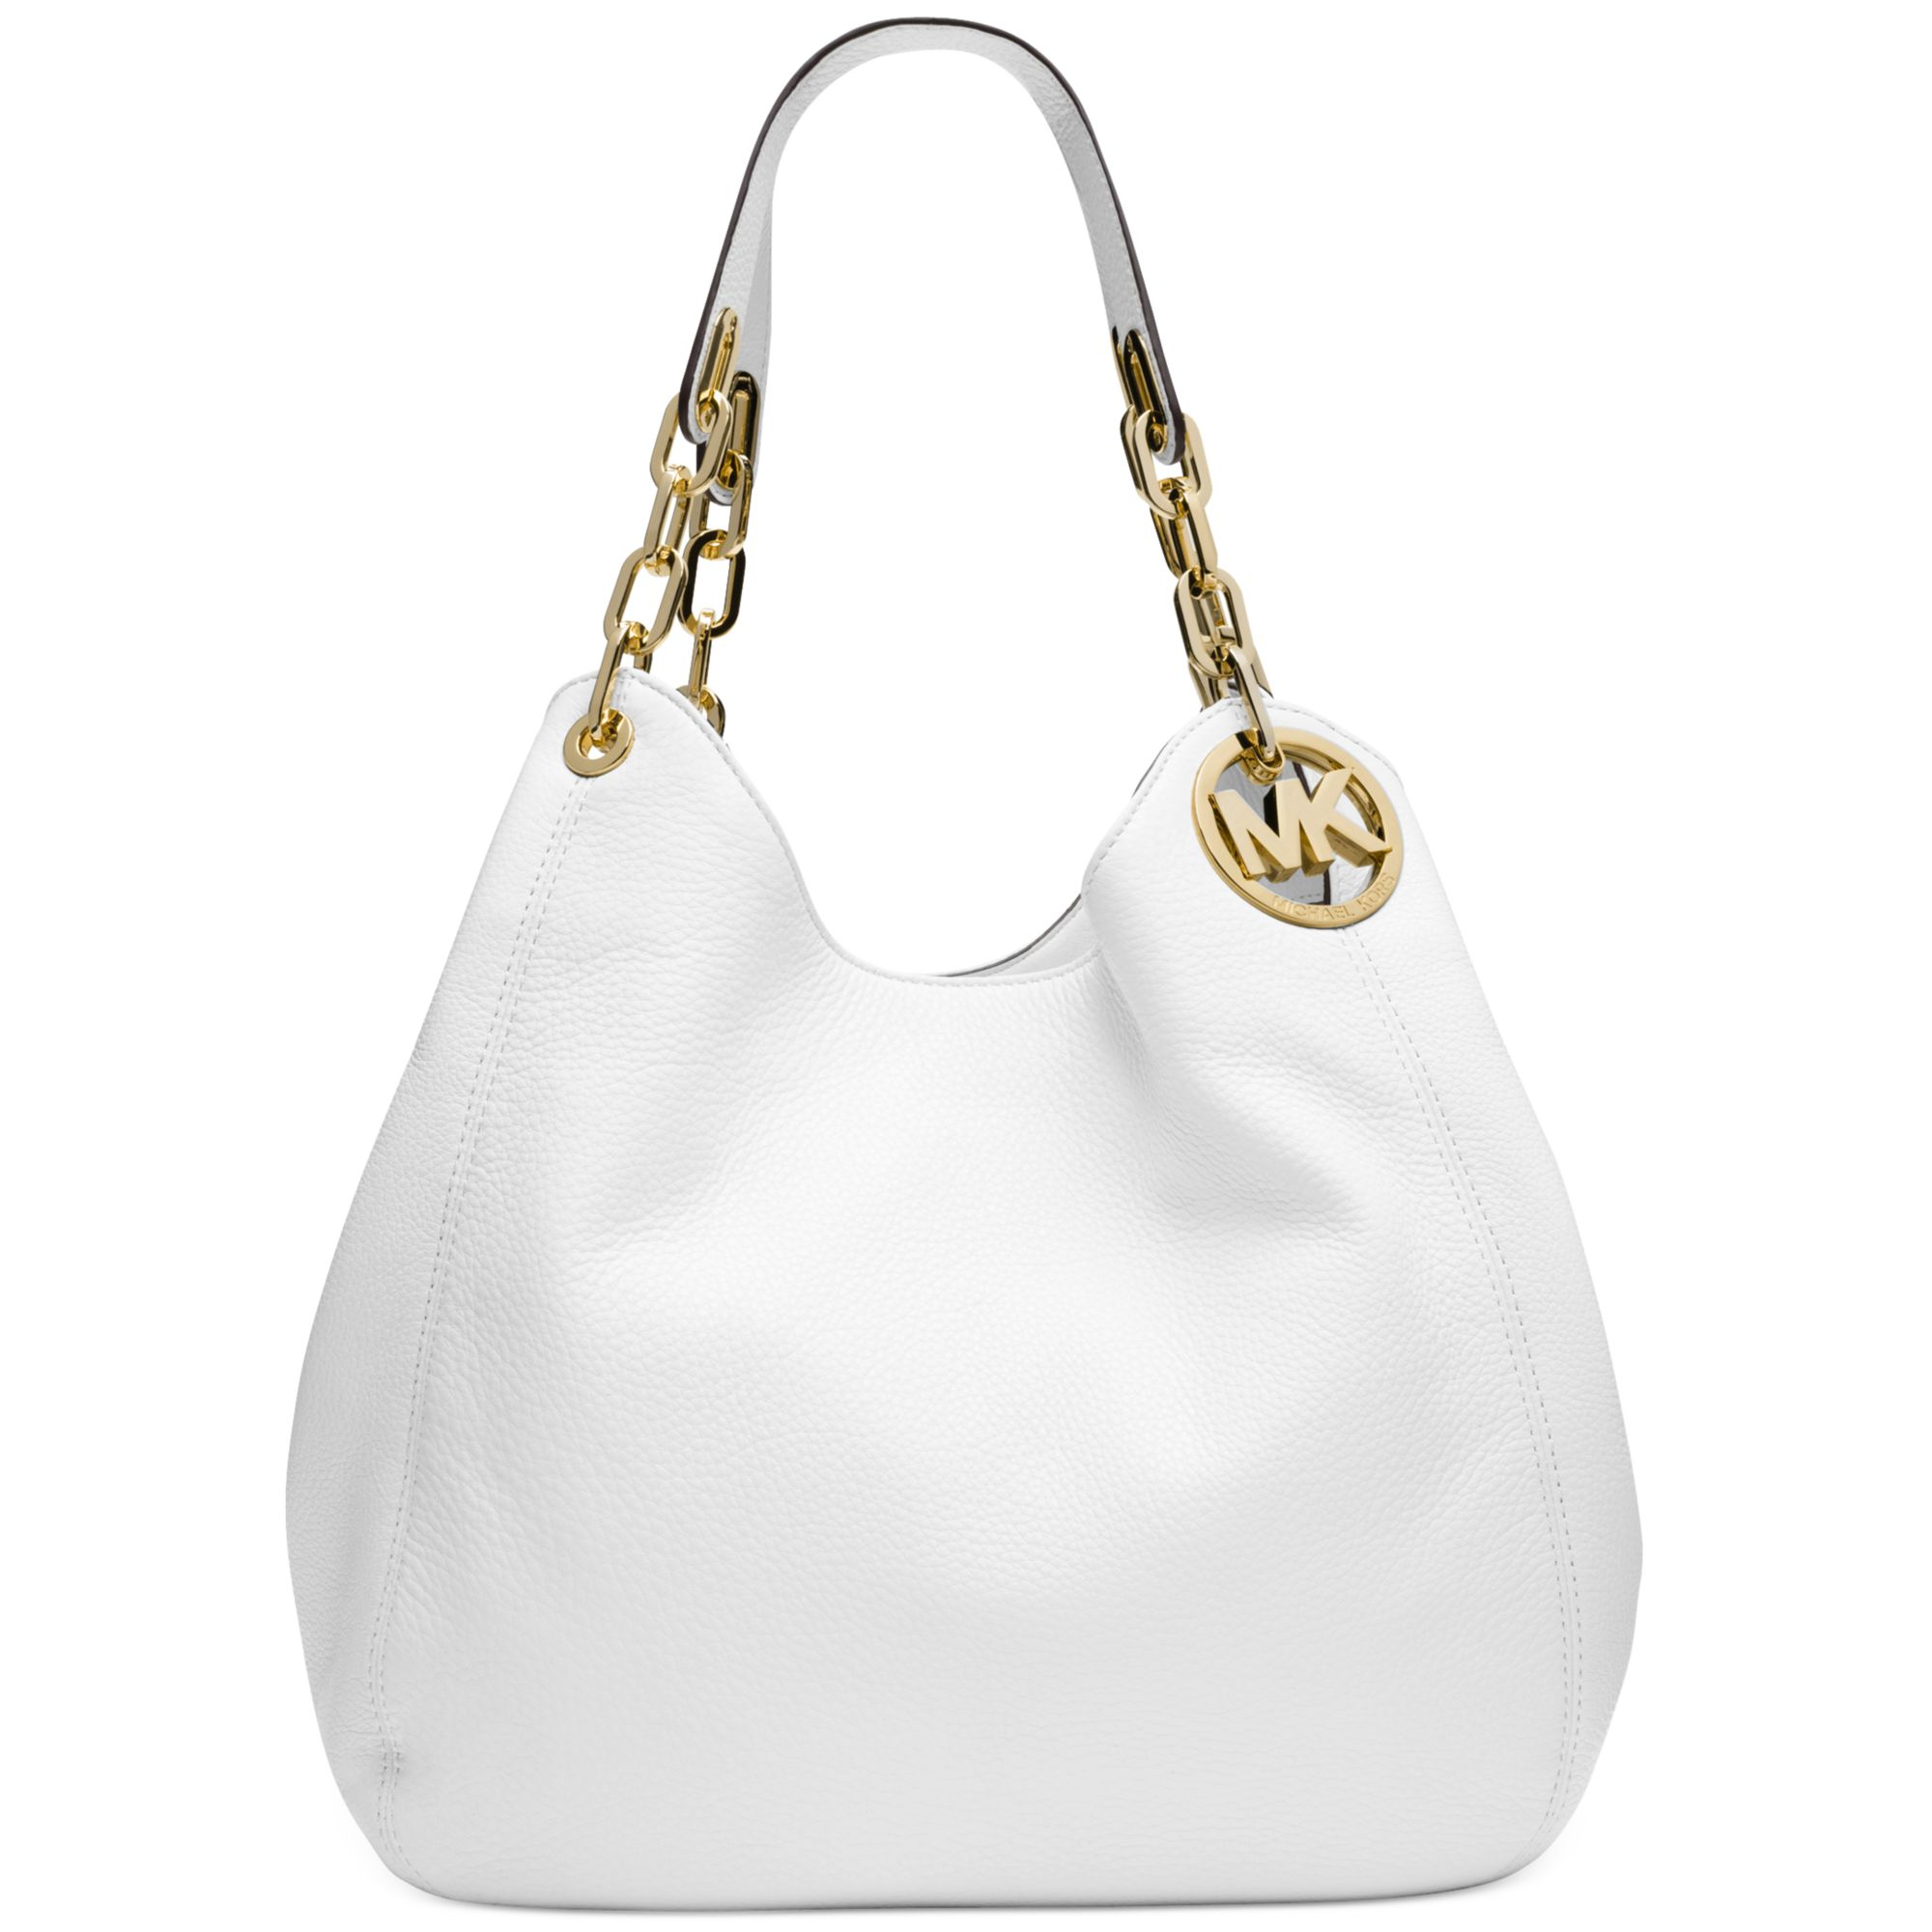 8363fc0f5fd0 Michael Kors Michael Fulton Large Shoulder Tote in White (OPTIC WHITE) -  Lyst